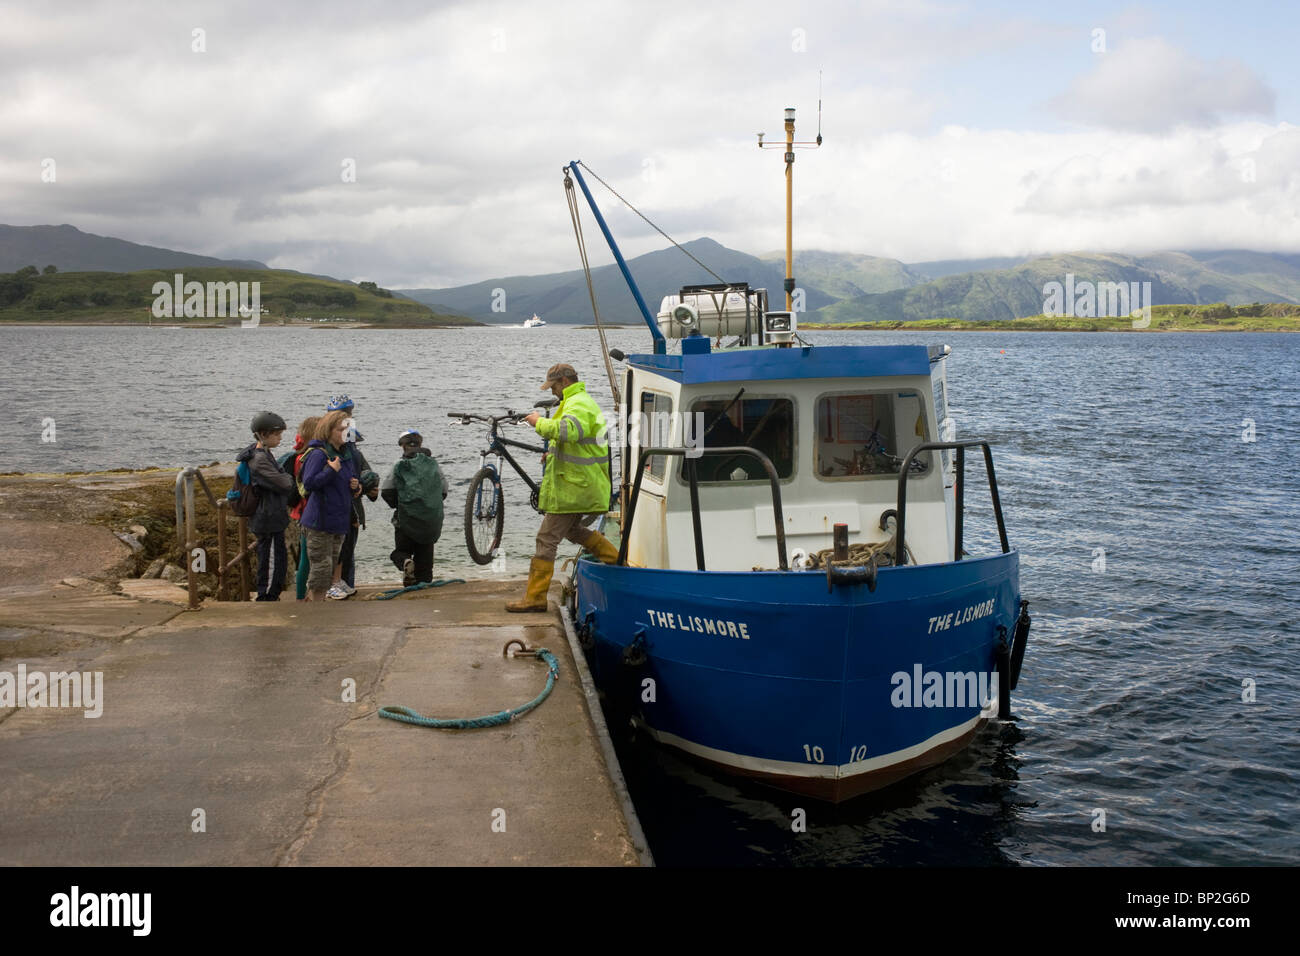 Foot passengers embark on short journey from Isle of Lismore to Port Appin, a regular ferry service for local community. - Stock Image